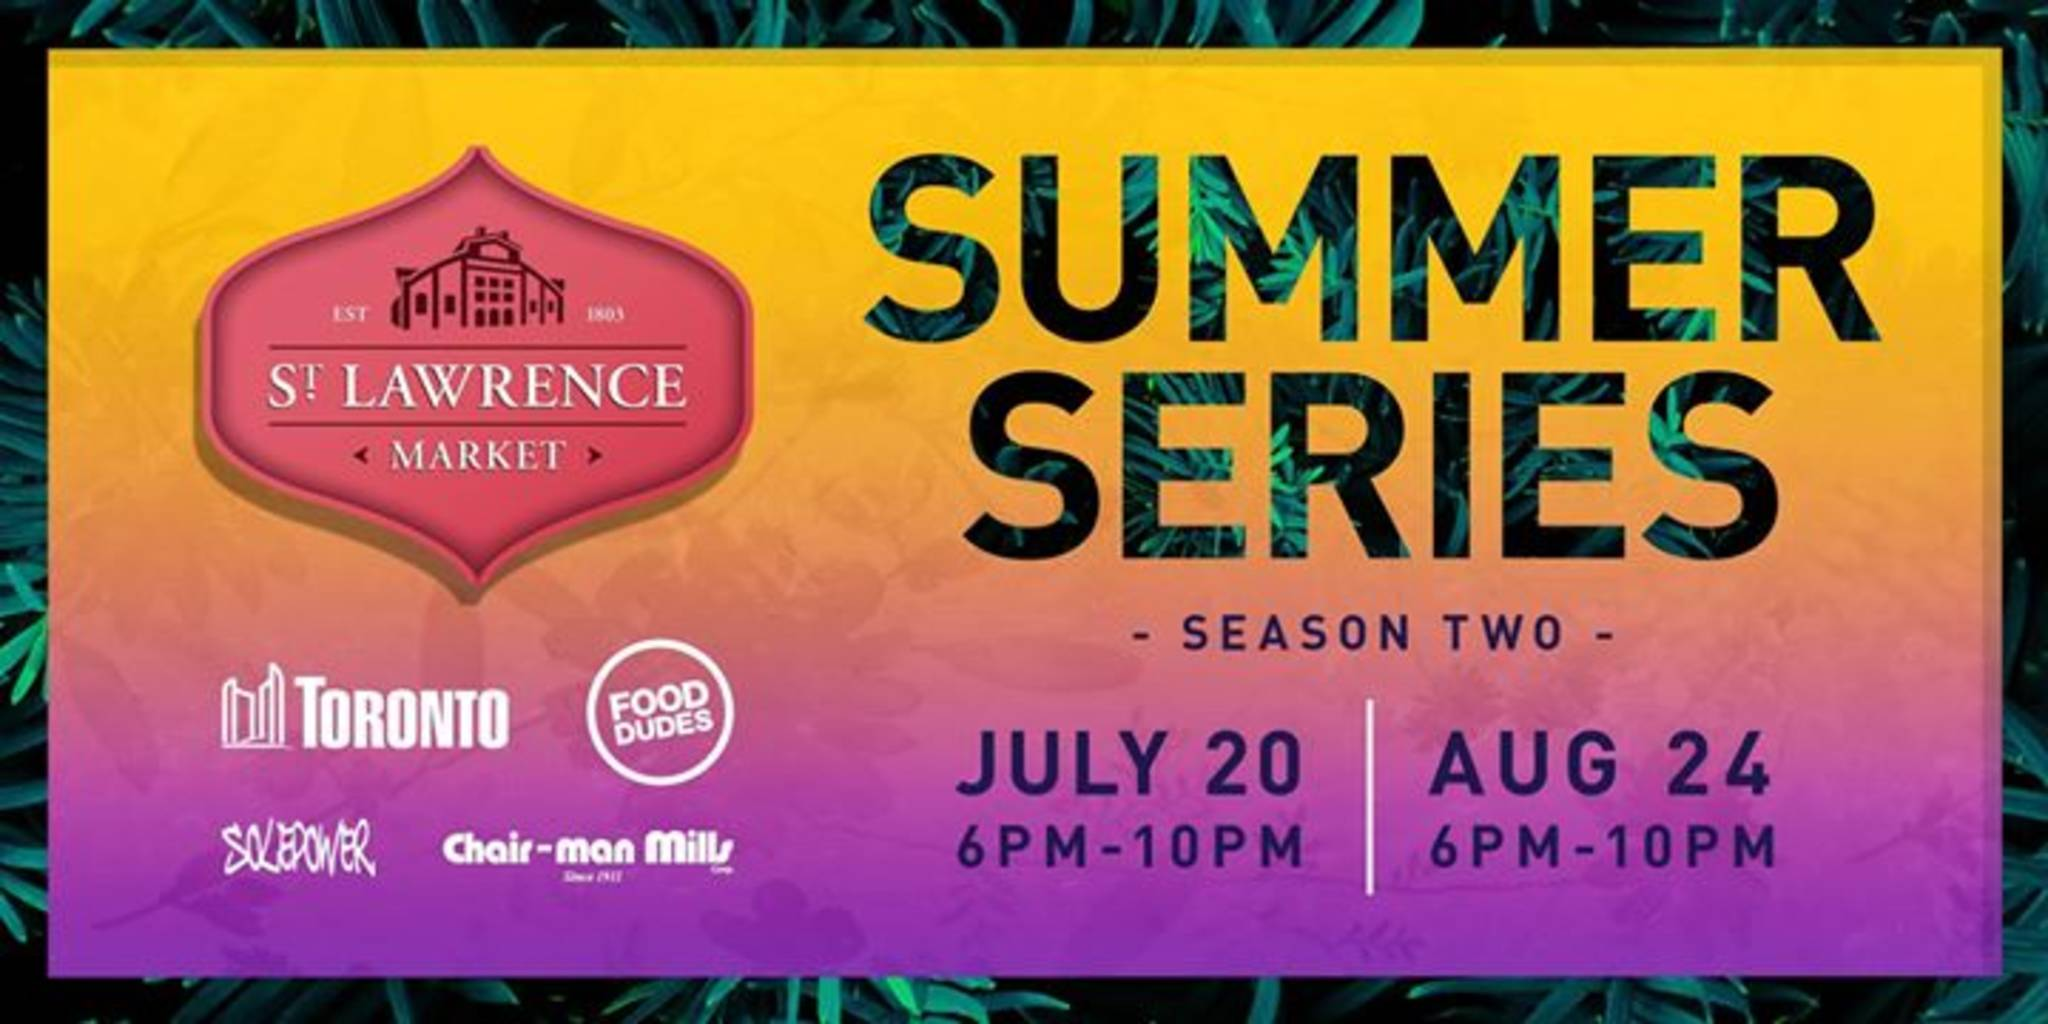 St. Lawrence Market Summer Series - Season Two #1